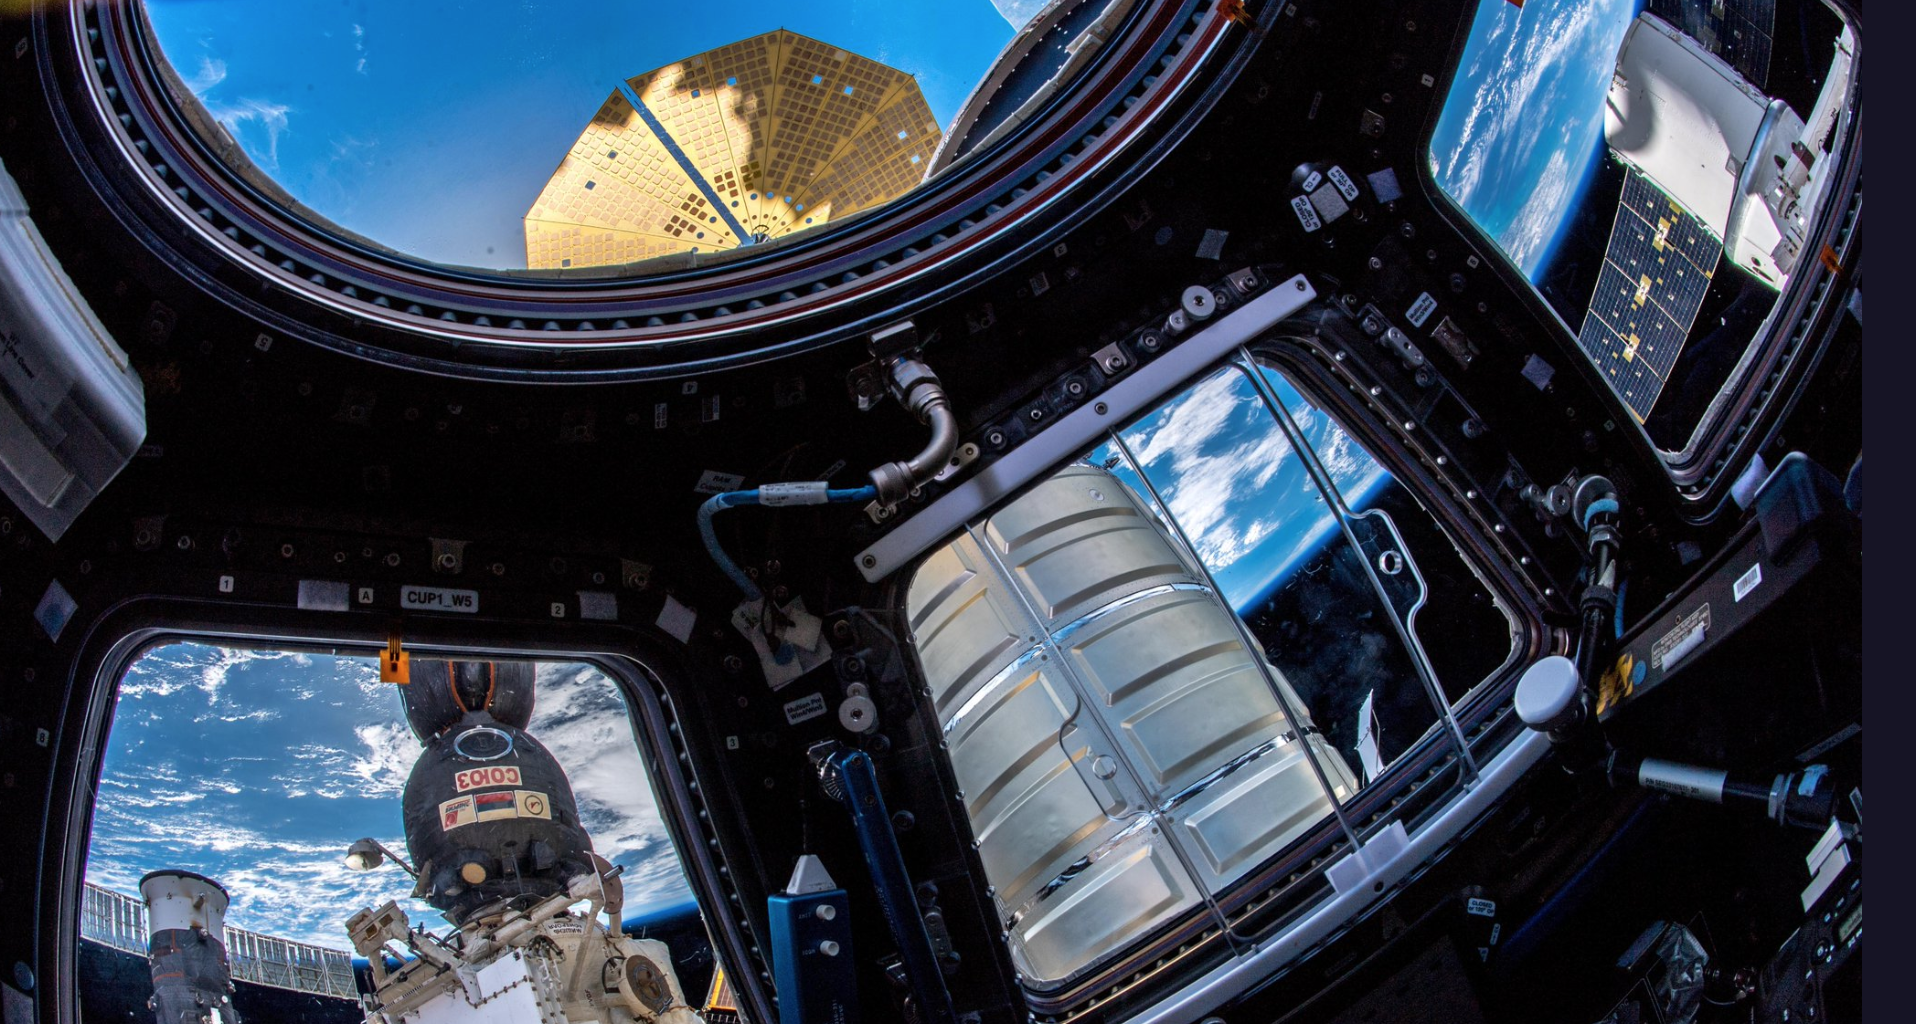 'A rare sight': Astronaut snaps incredible photo of 5 spaceships